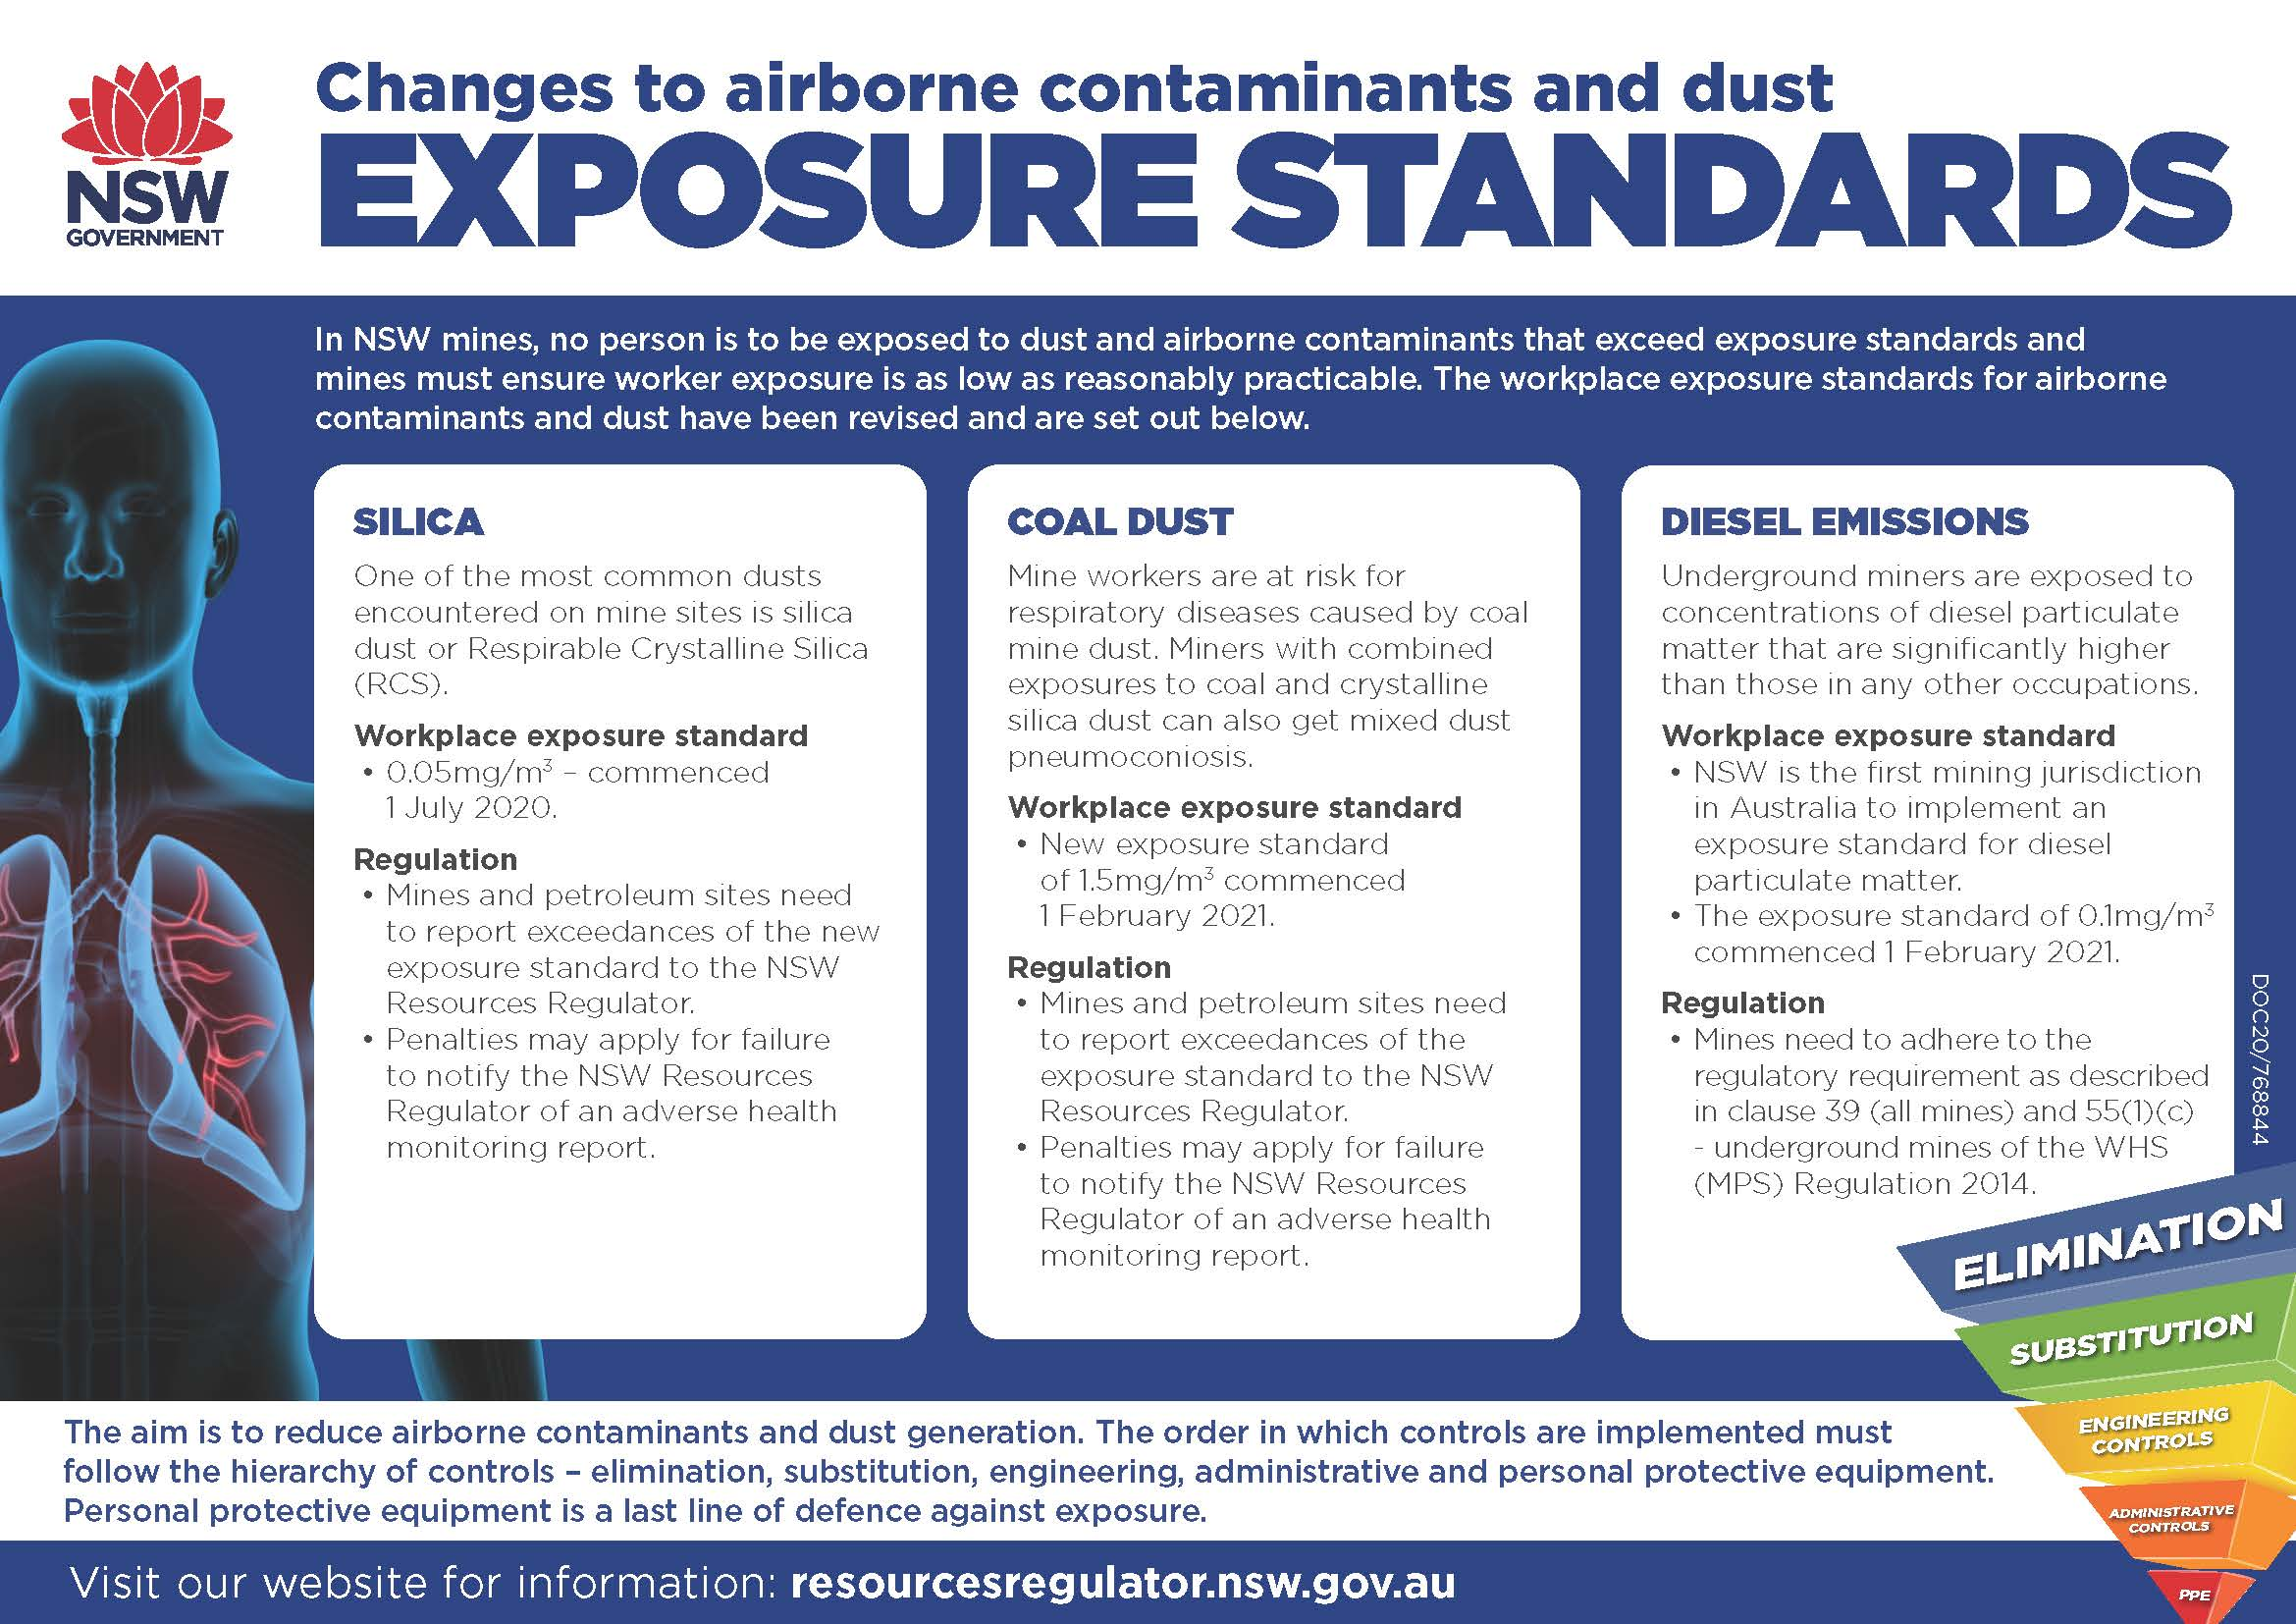 Changes to airborne contaminants and dust exposure standards guidance poster